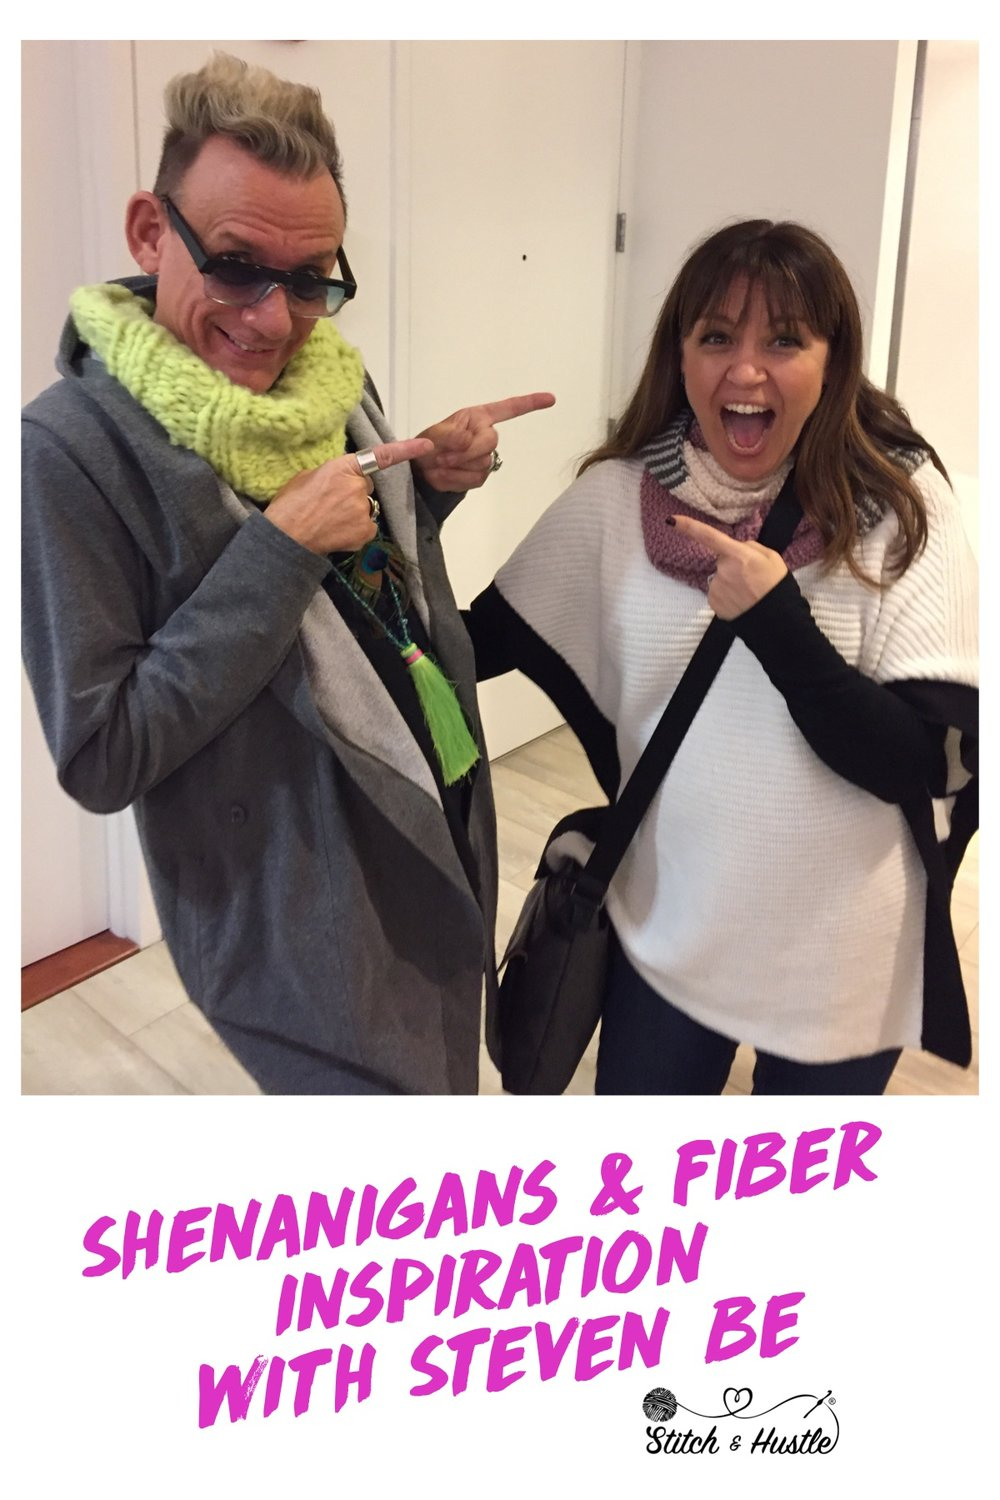 Shenanigans and fiber inspiration with steven be.jpg